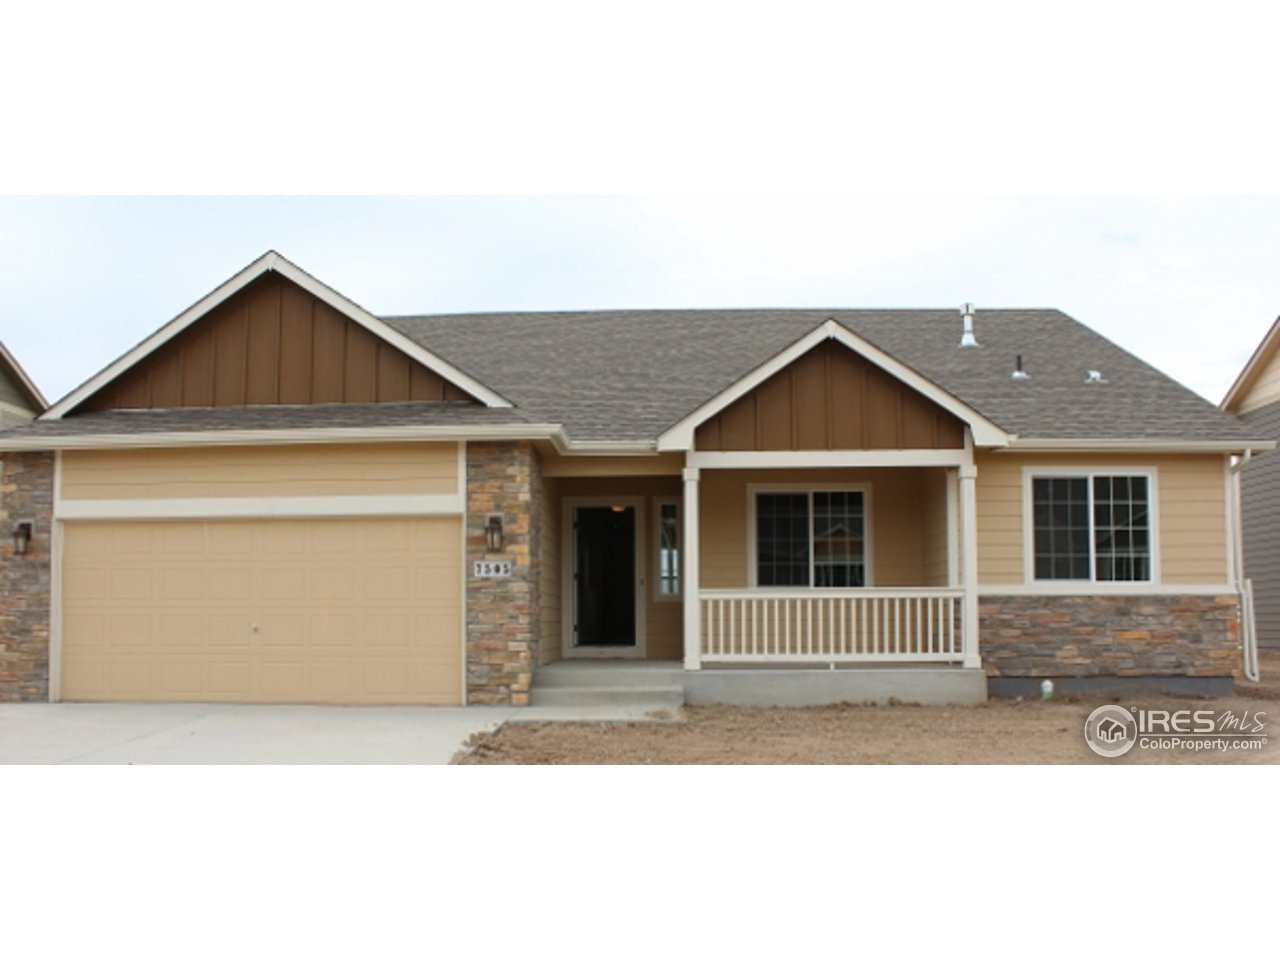 7505 Homestretch Dr, Wellington, CO 80549